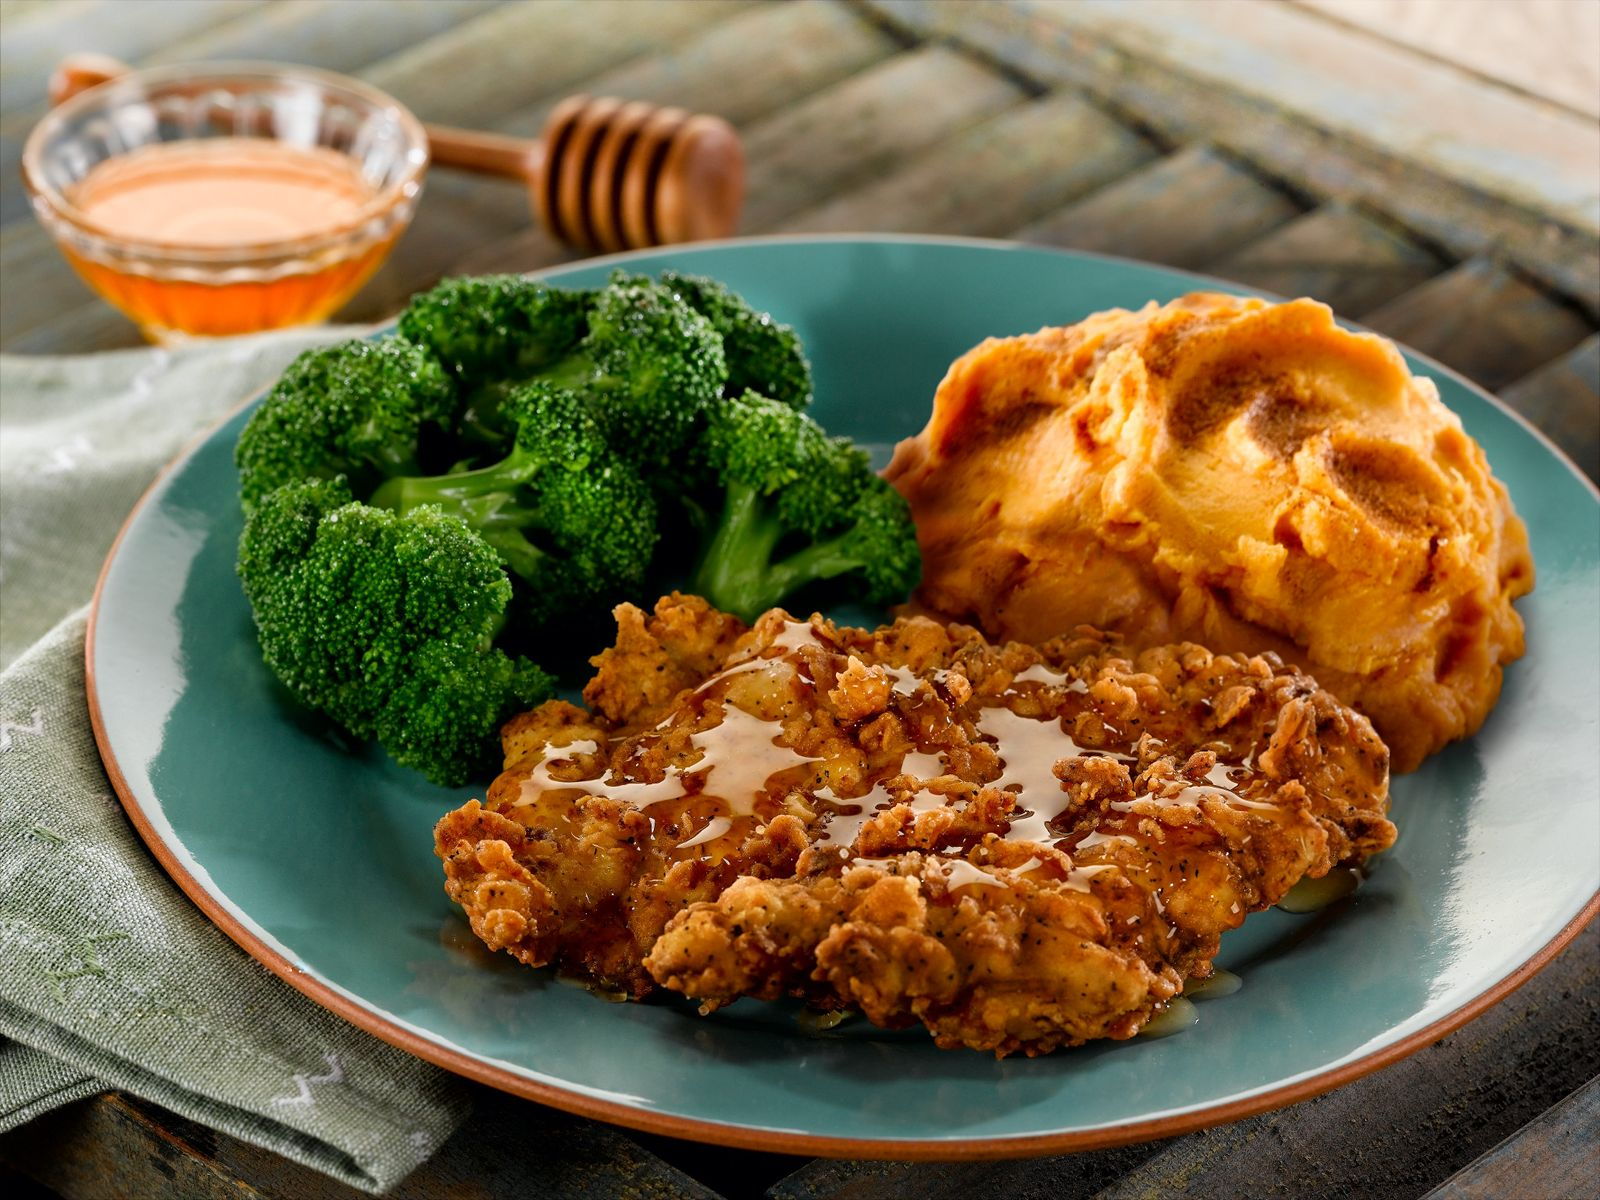 O'Charley's Honey-Drizzled Southern Fried Chicken